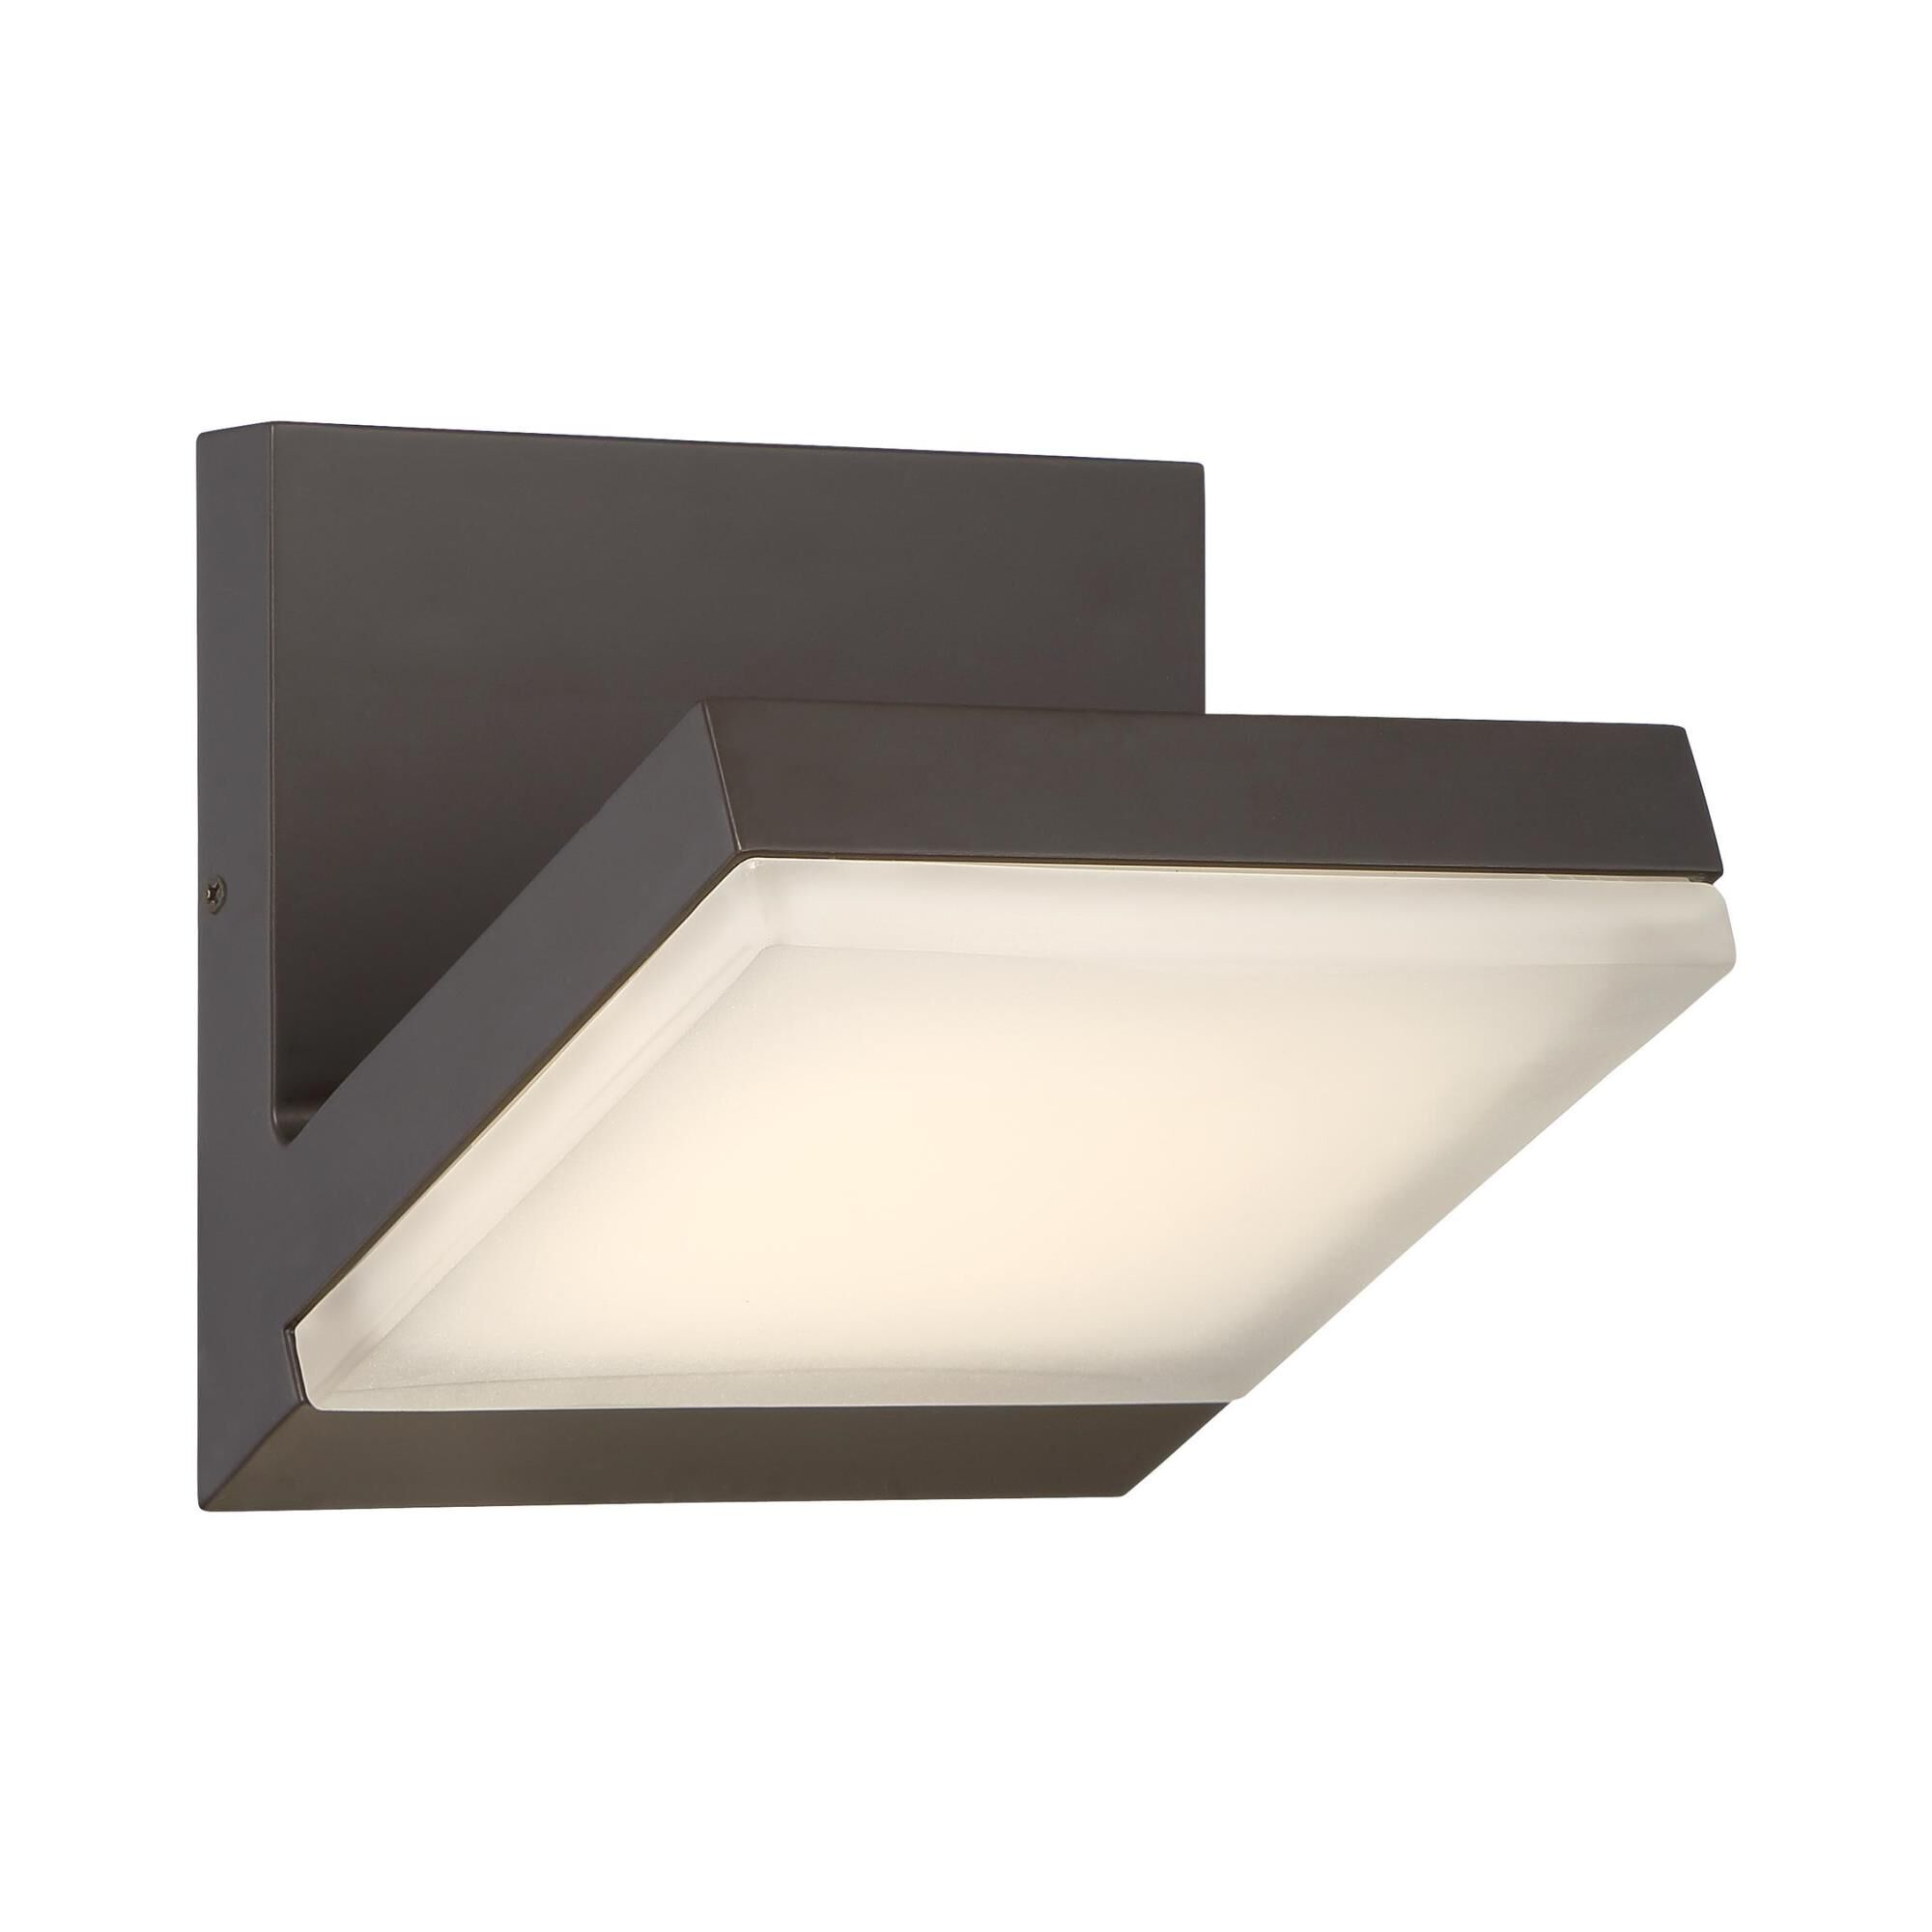 Kovacs Angle 6 Inch Tall 1 Light Led Outdoor Wall Light Angle - P1259-143-l - Transitional